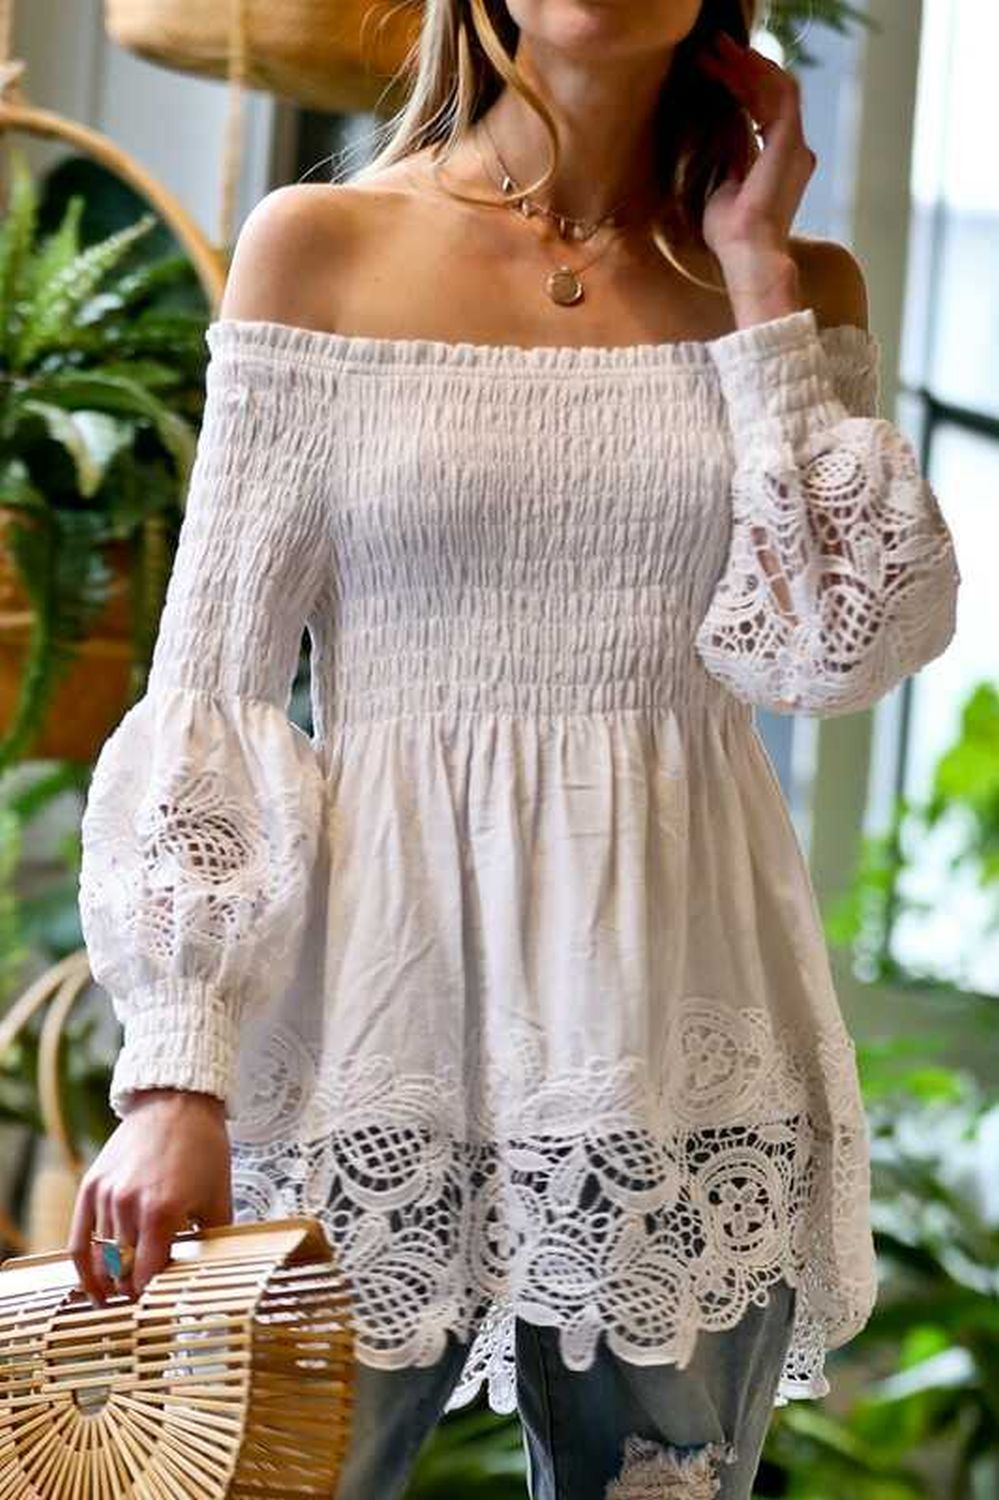 Off shoulder with lace detail blouse top